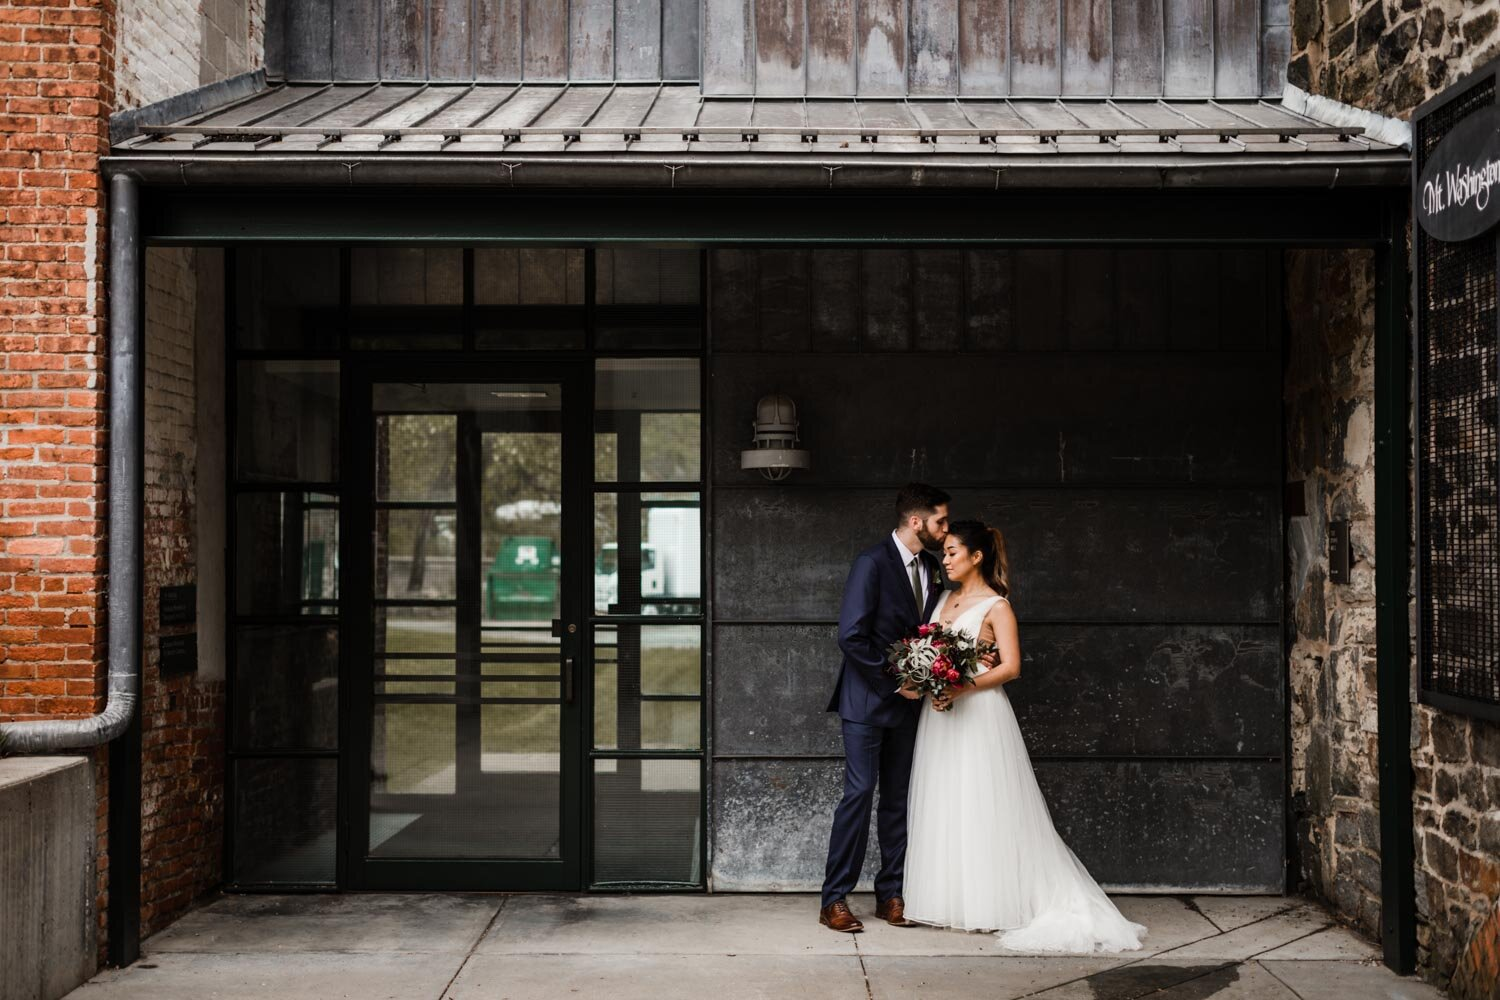 Mt Washington Mill Dye House industrial Baltimore wedding by Barbara O Photography-131.jpg